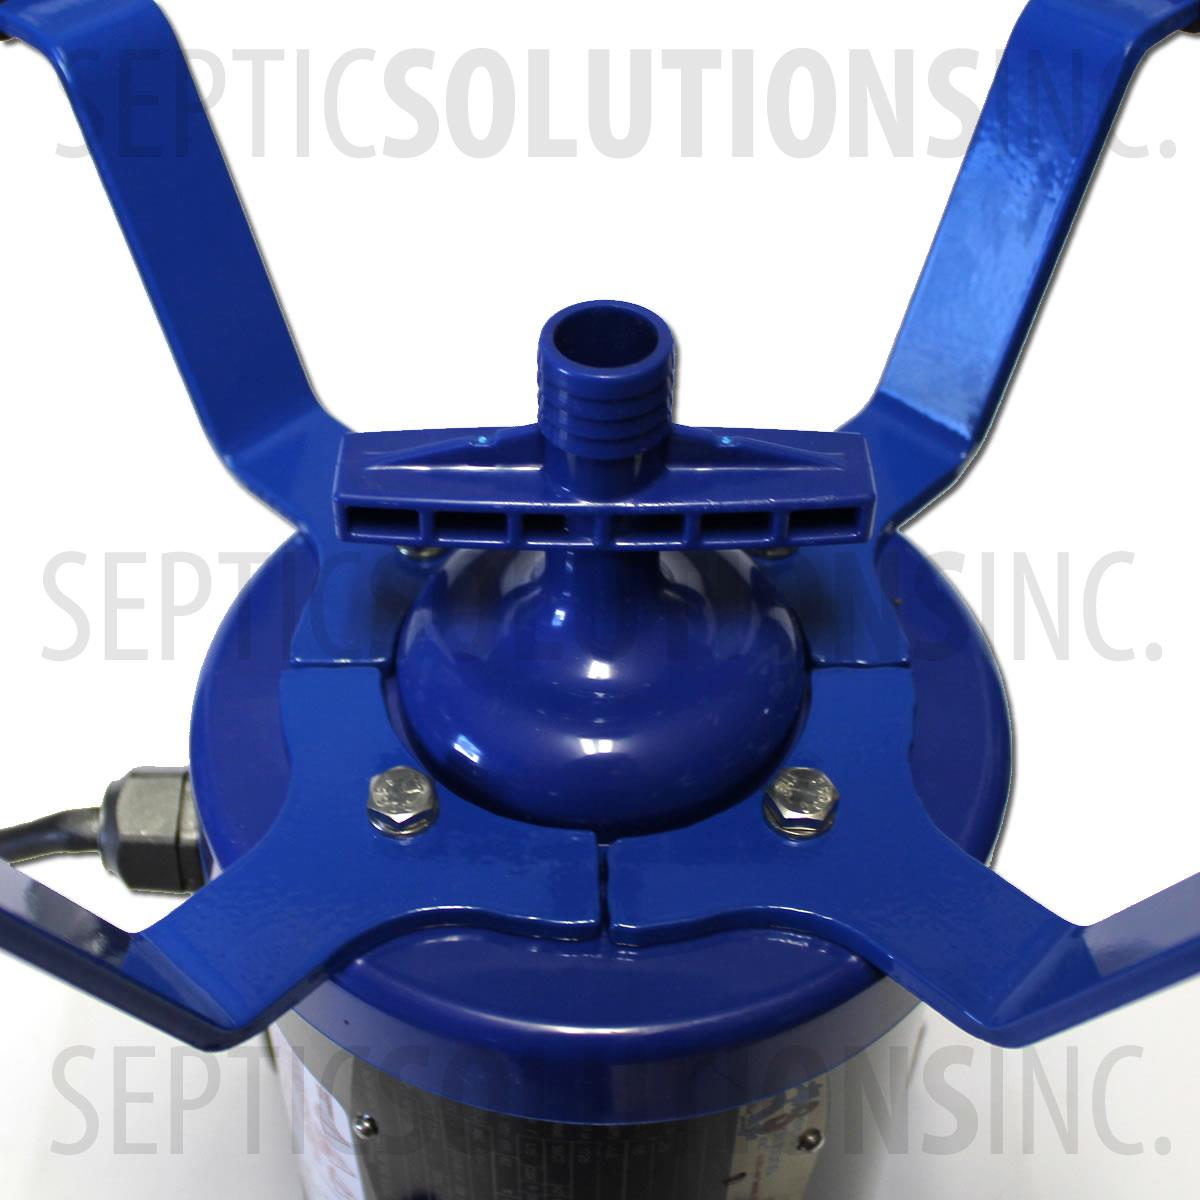 Ultra Air Model 735 Blue Septic Aerator Norweco